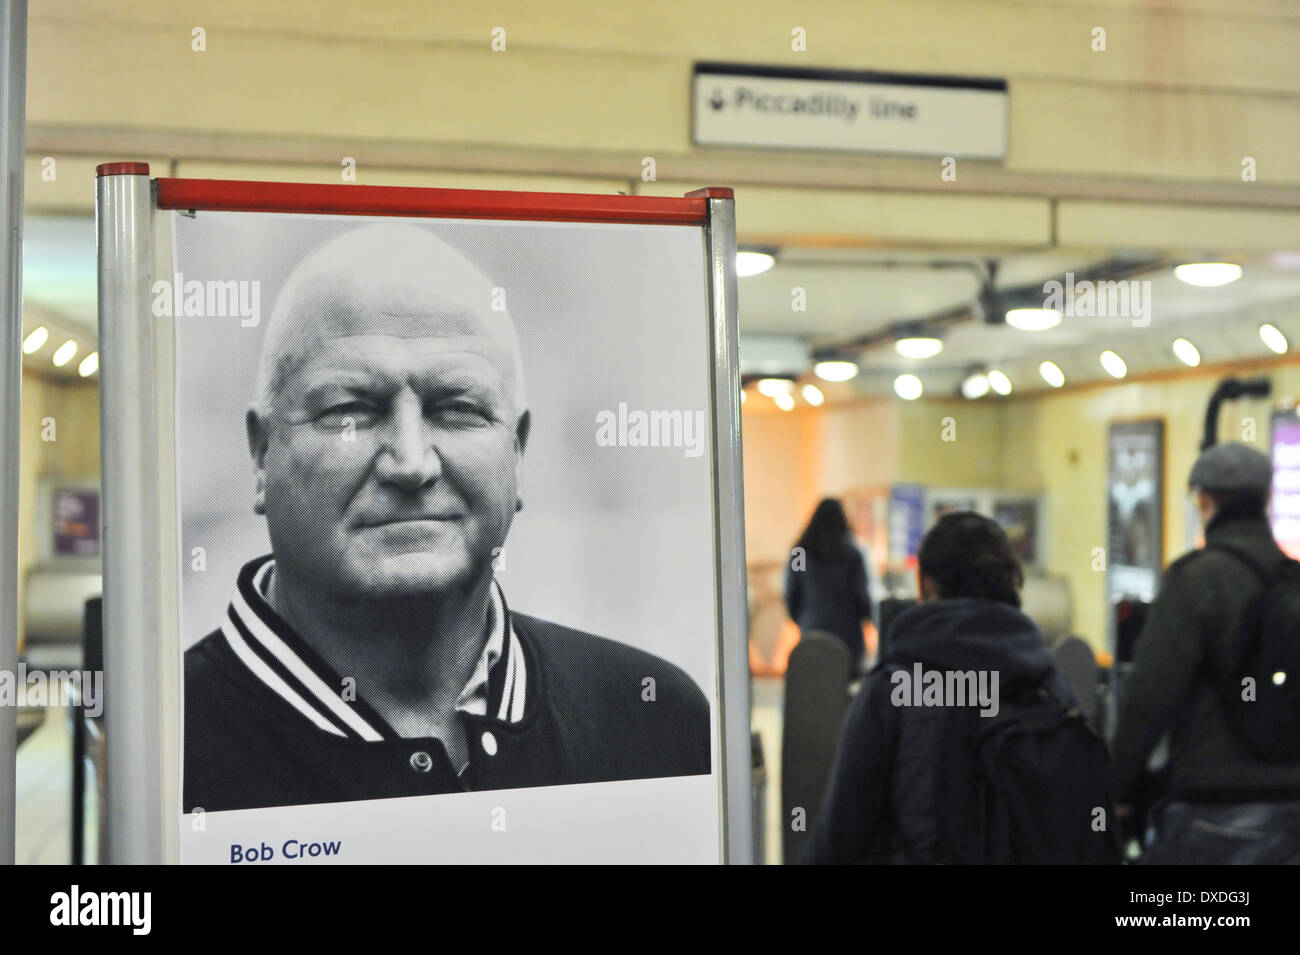 Turnpike Lane Station, London, UK. 24th March 2014. Evening commuters walk past a poster of the late Bob Crow, the General Secretary of the RMT Union, in Turnpike Lane station on the day of his funeral. Credit:  Matthew Chattle/Alamy Live News - Stock Image